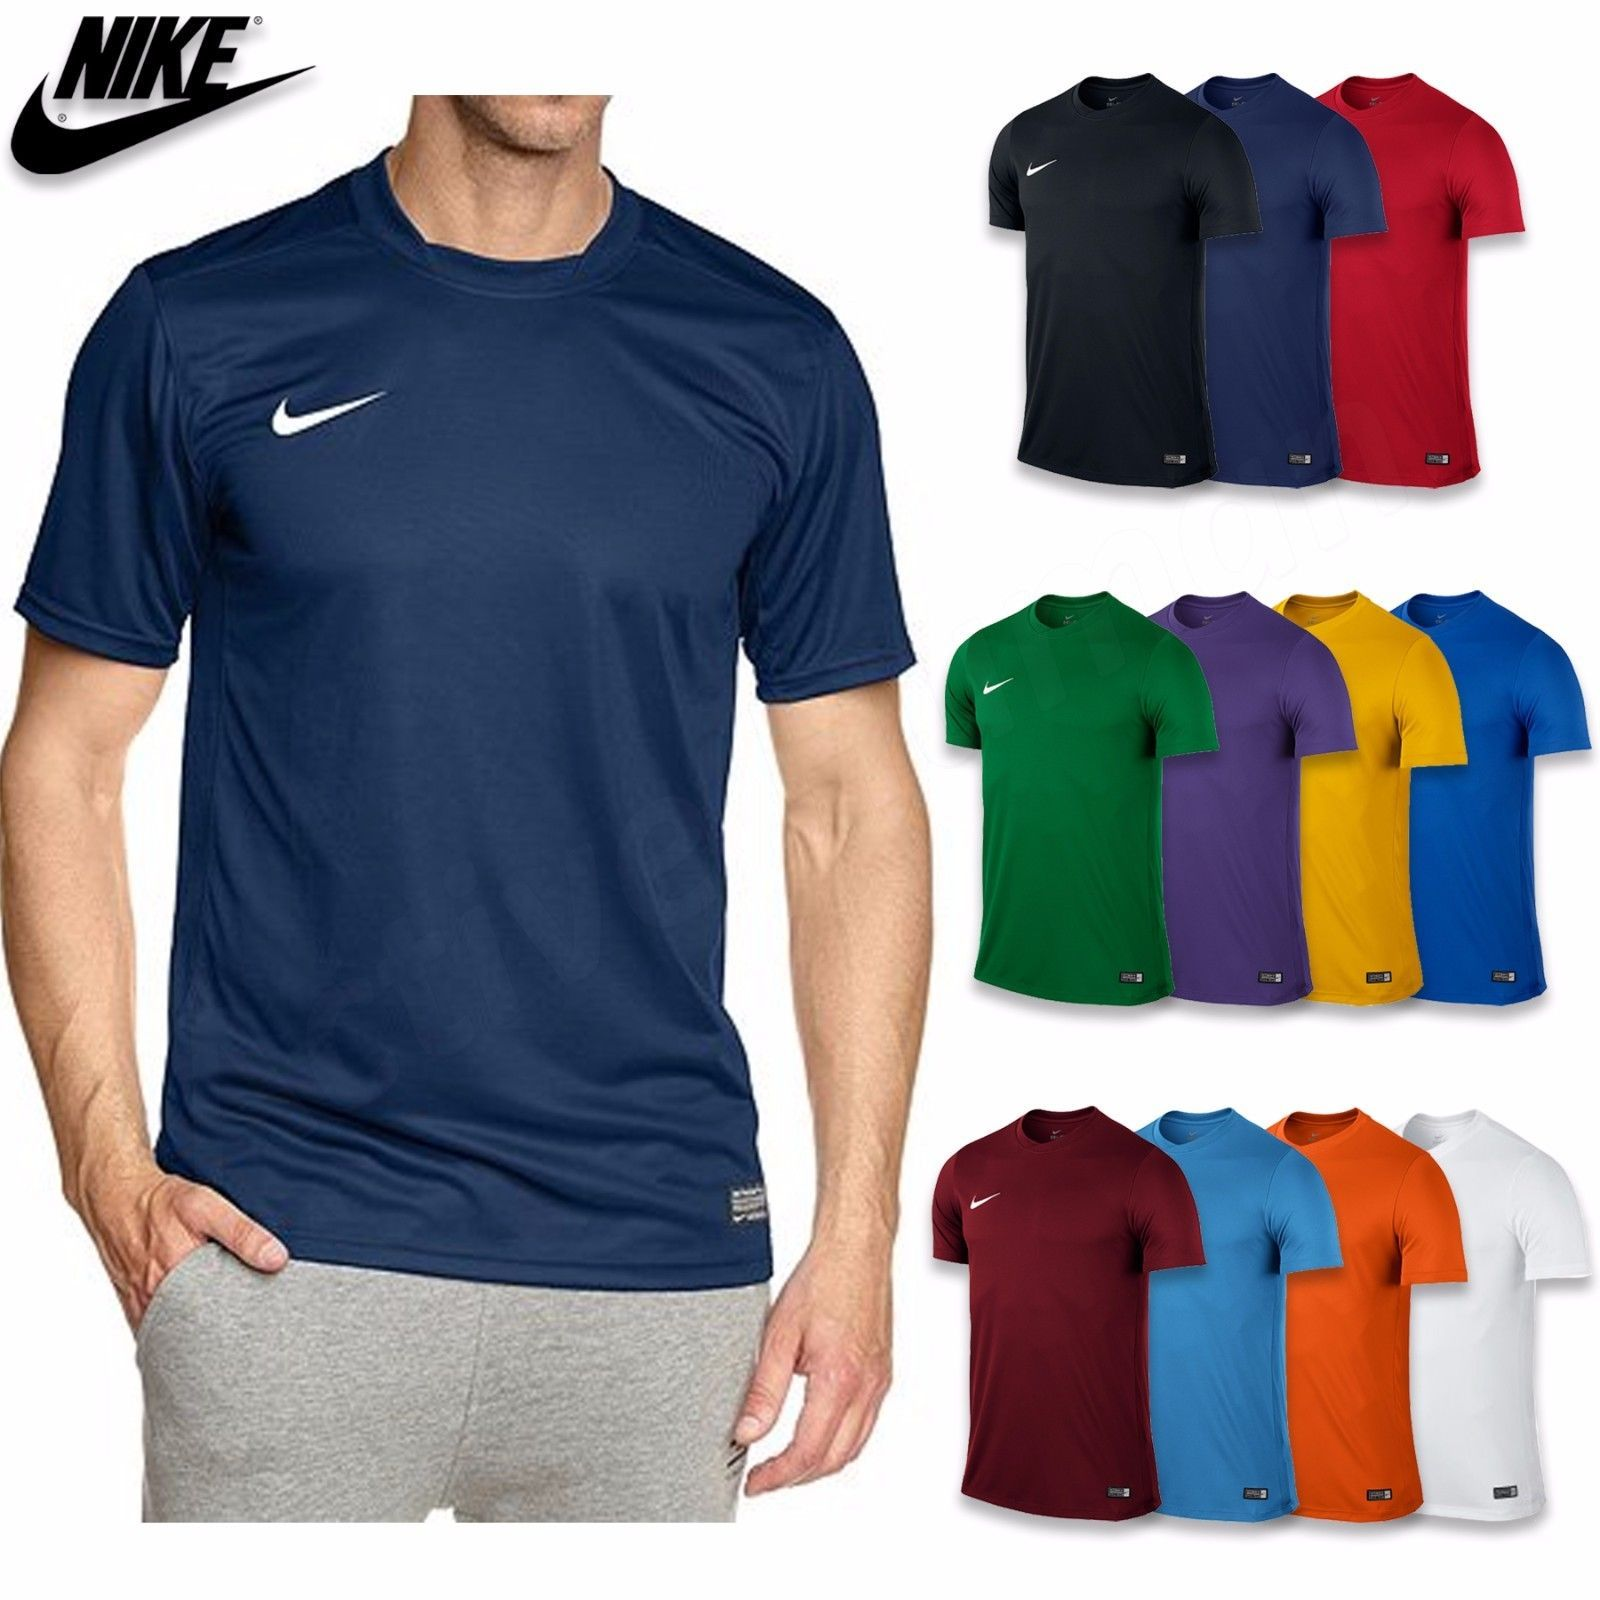 New Mens Nike Gym Sports Tee T-Shirt,100% Genuine !100% Polyester - Top  Size   S, M, L, XL, XXL - Colors   Black, Navy, Red, Blue - Price    11.47  ... 6b5e3d196a